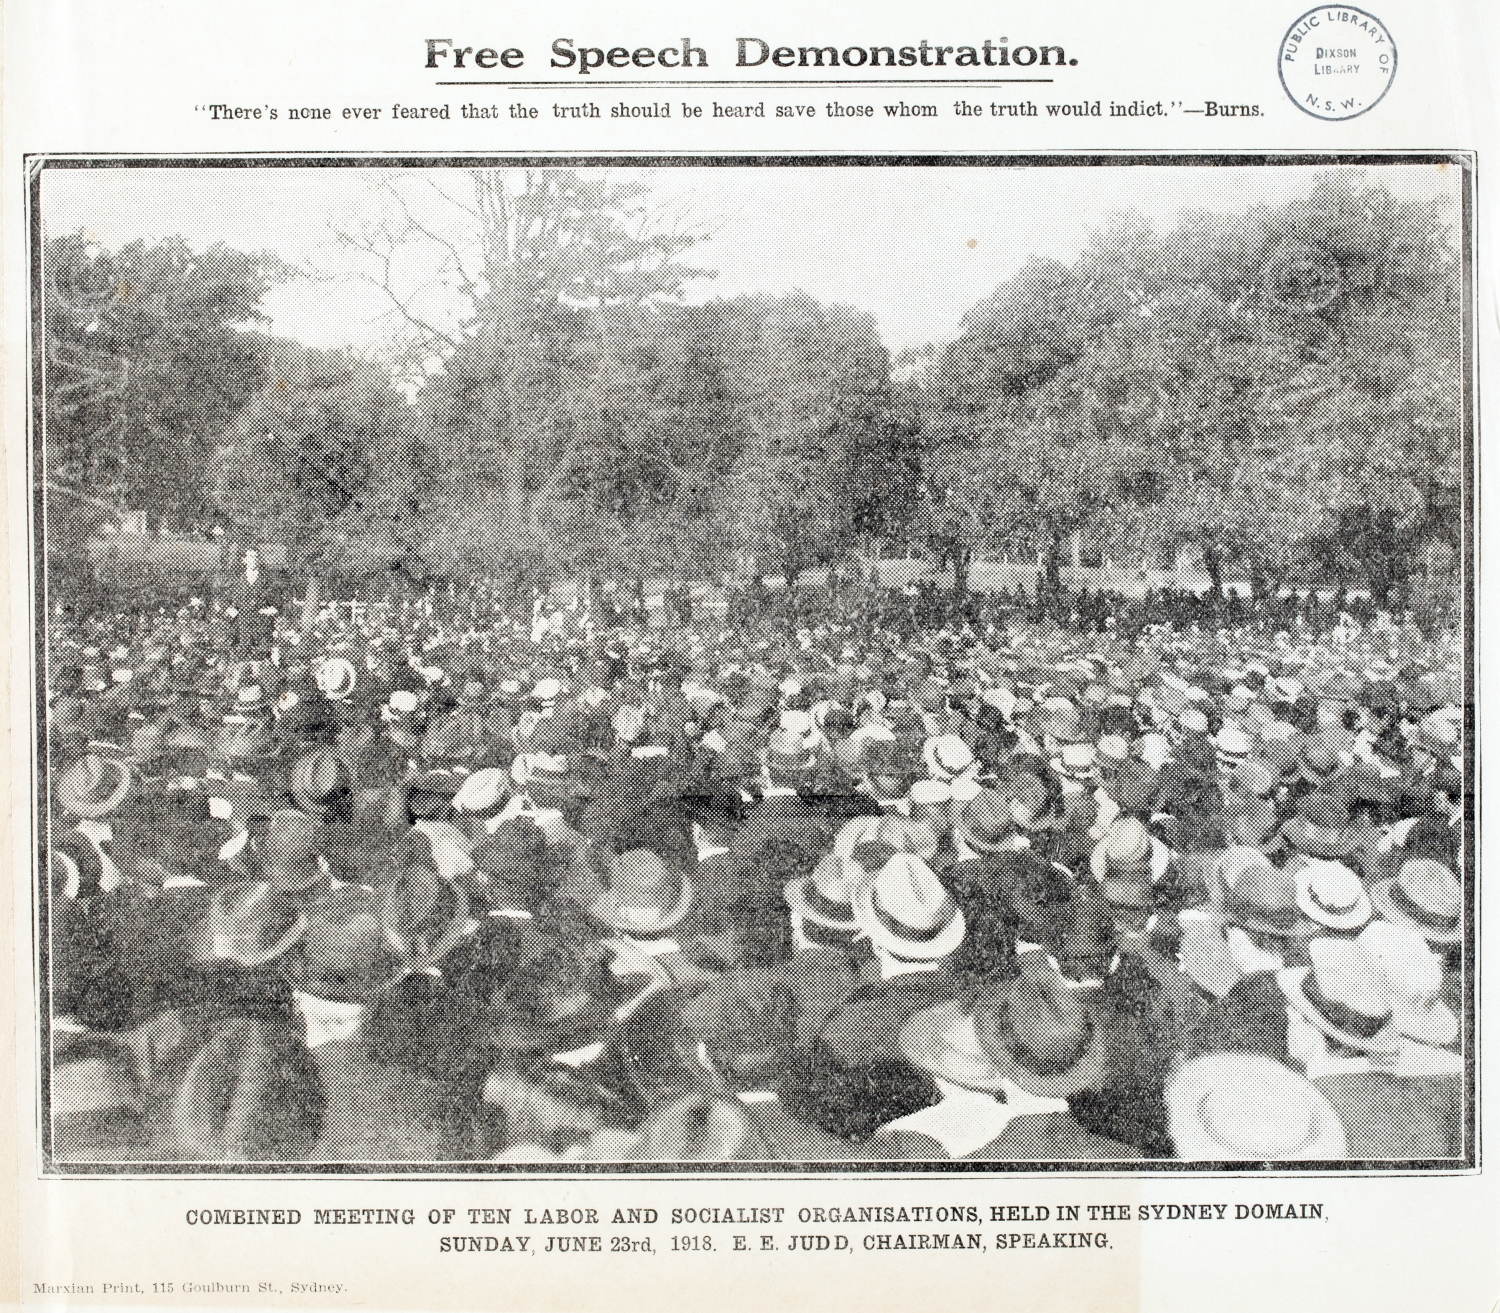 Newsprint photo of large crowd in park.